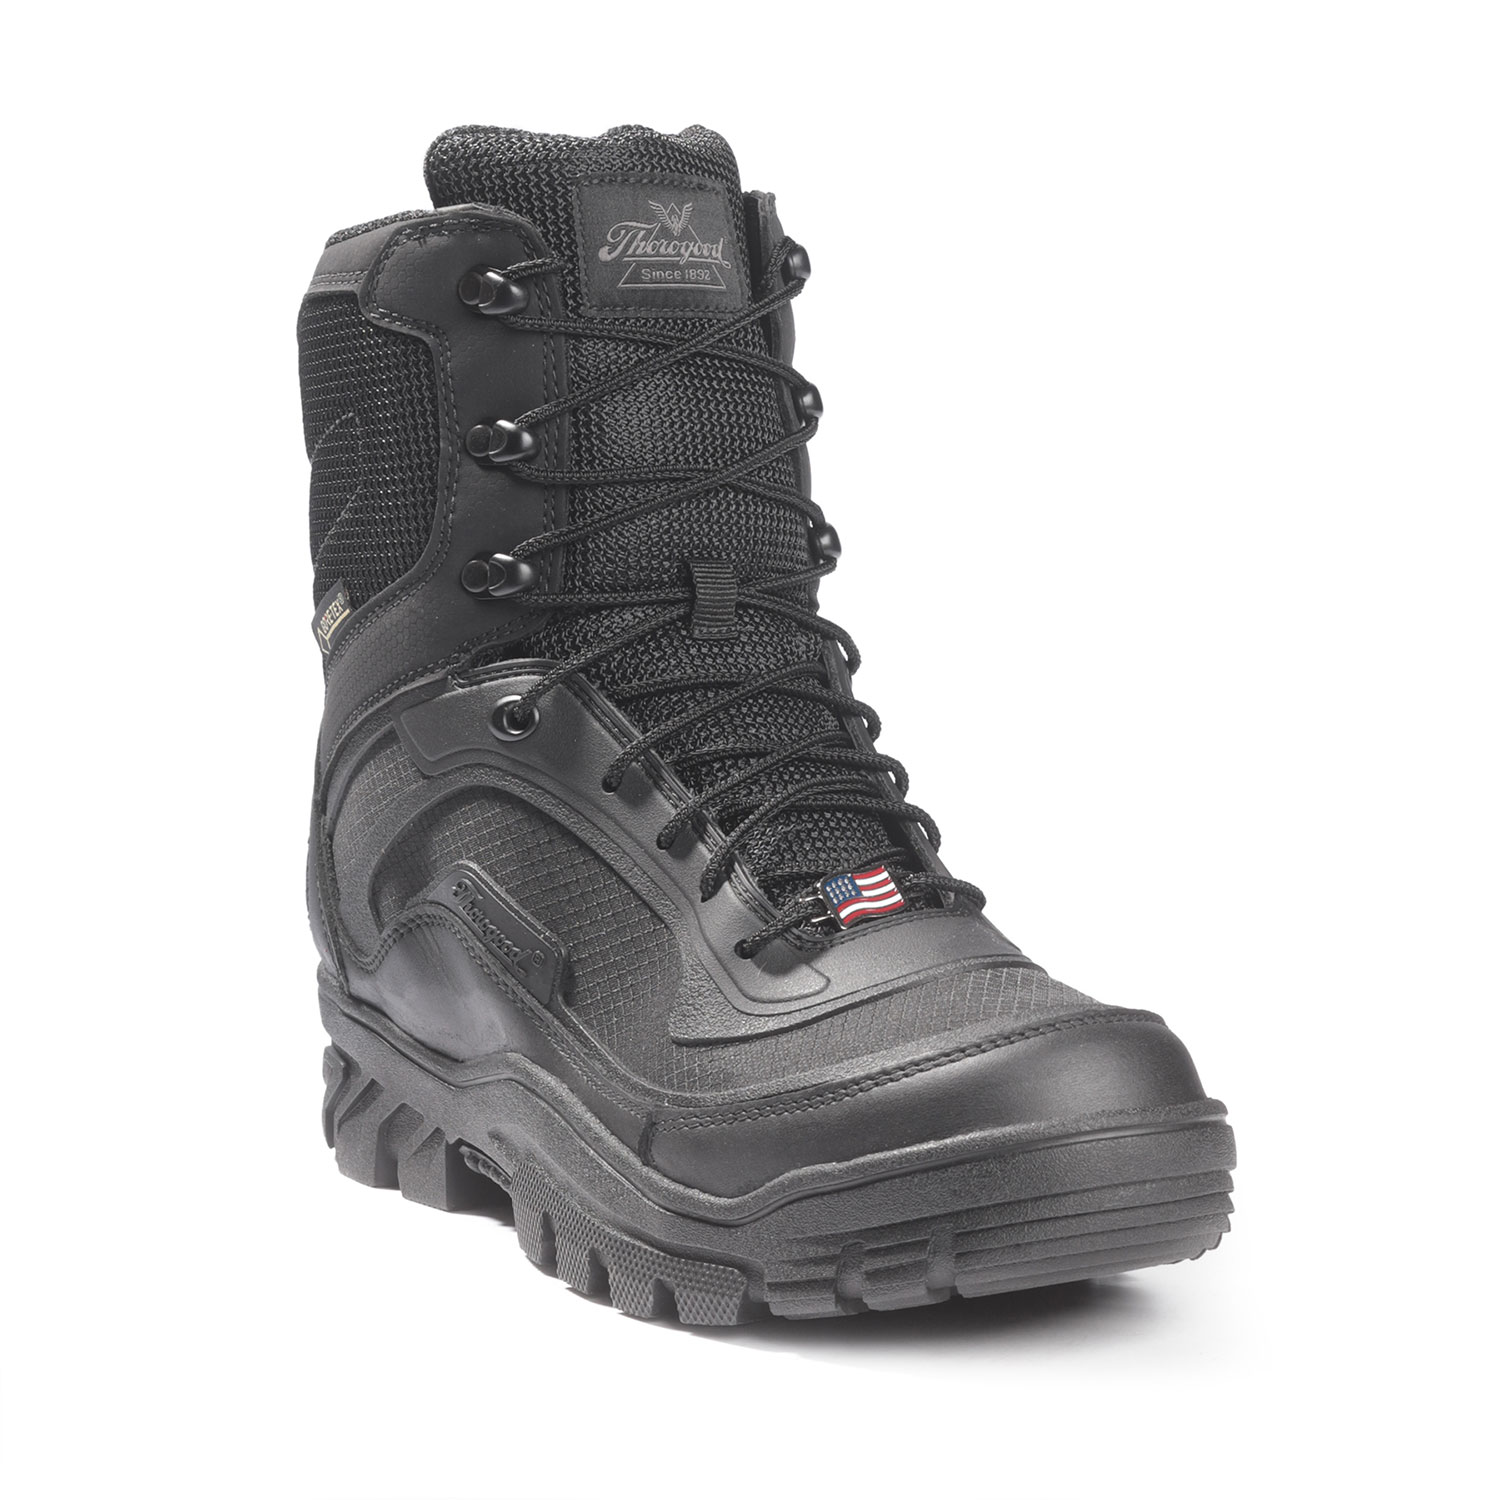 "Thorogood Veracity GTX 7"" Tactical Side-Zip Boot"